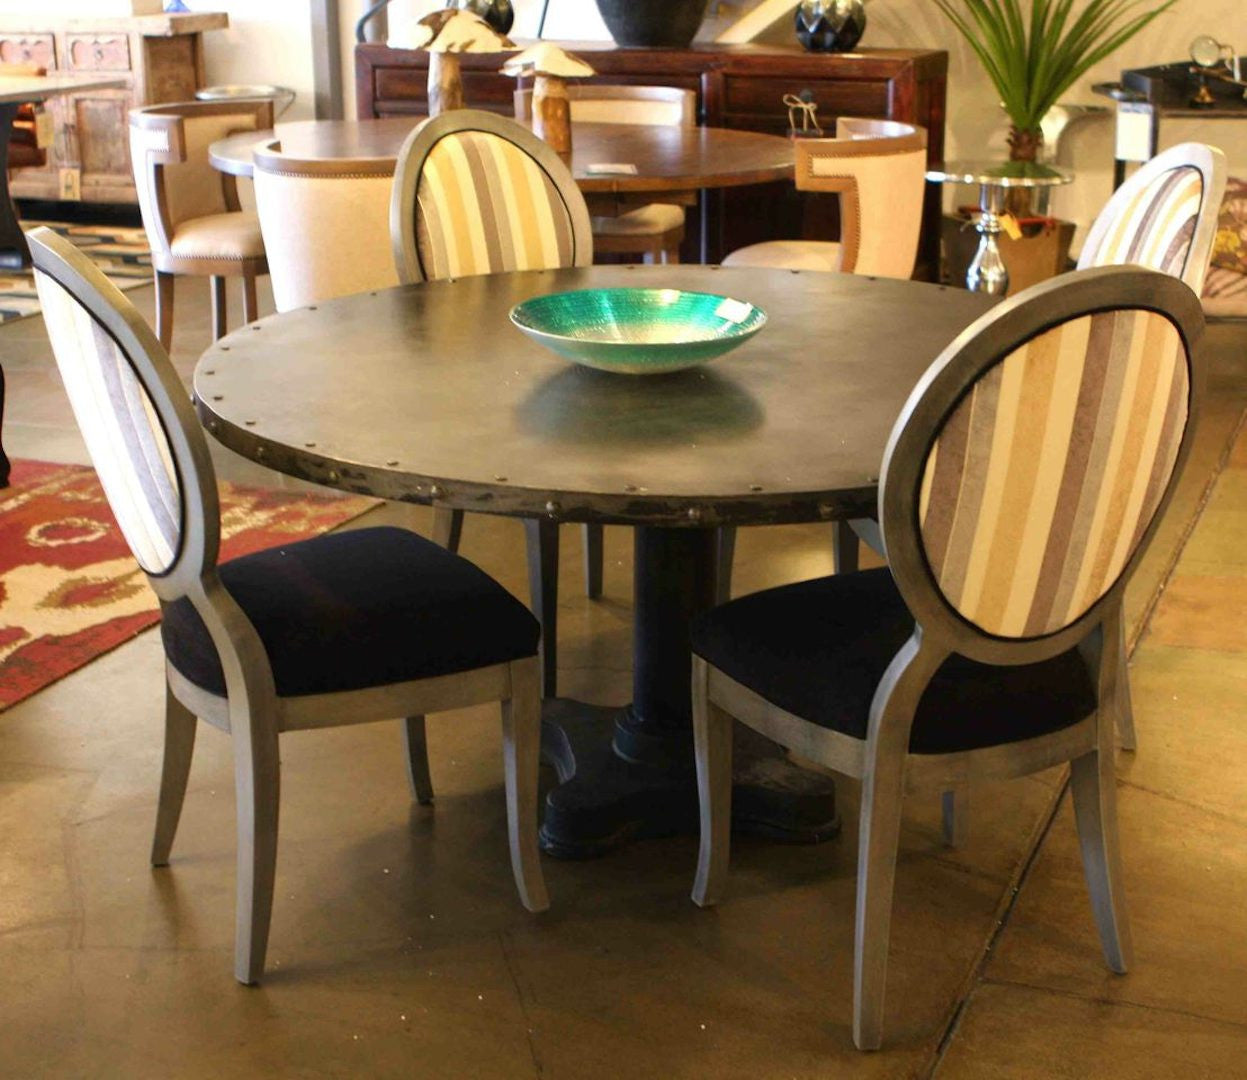 Industrial Modern Dining Room Table: Dining Room Vignettes